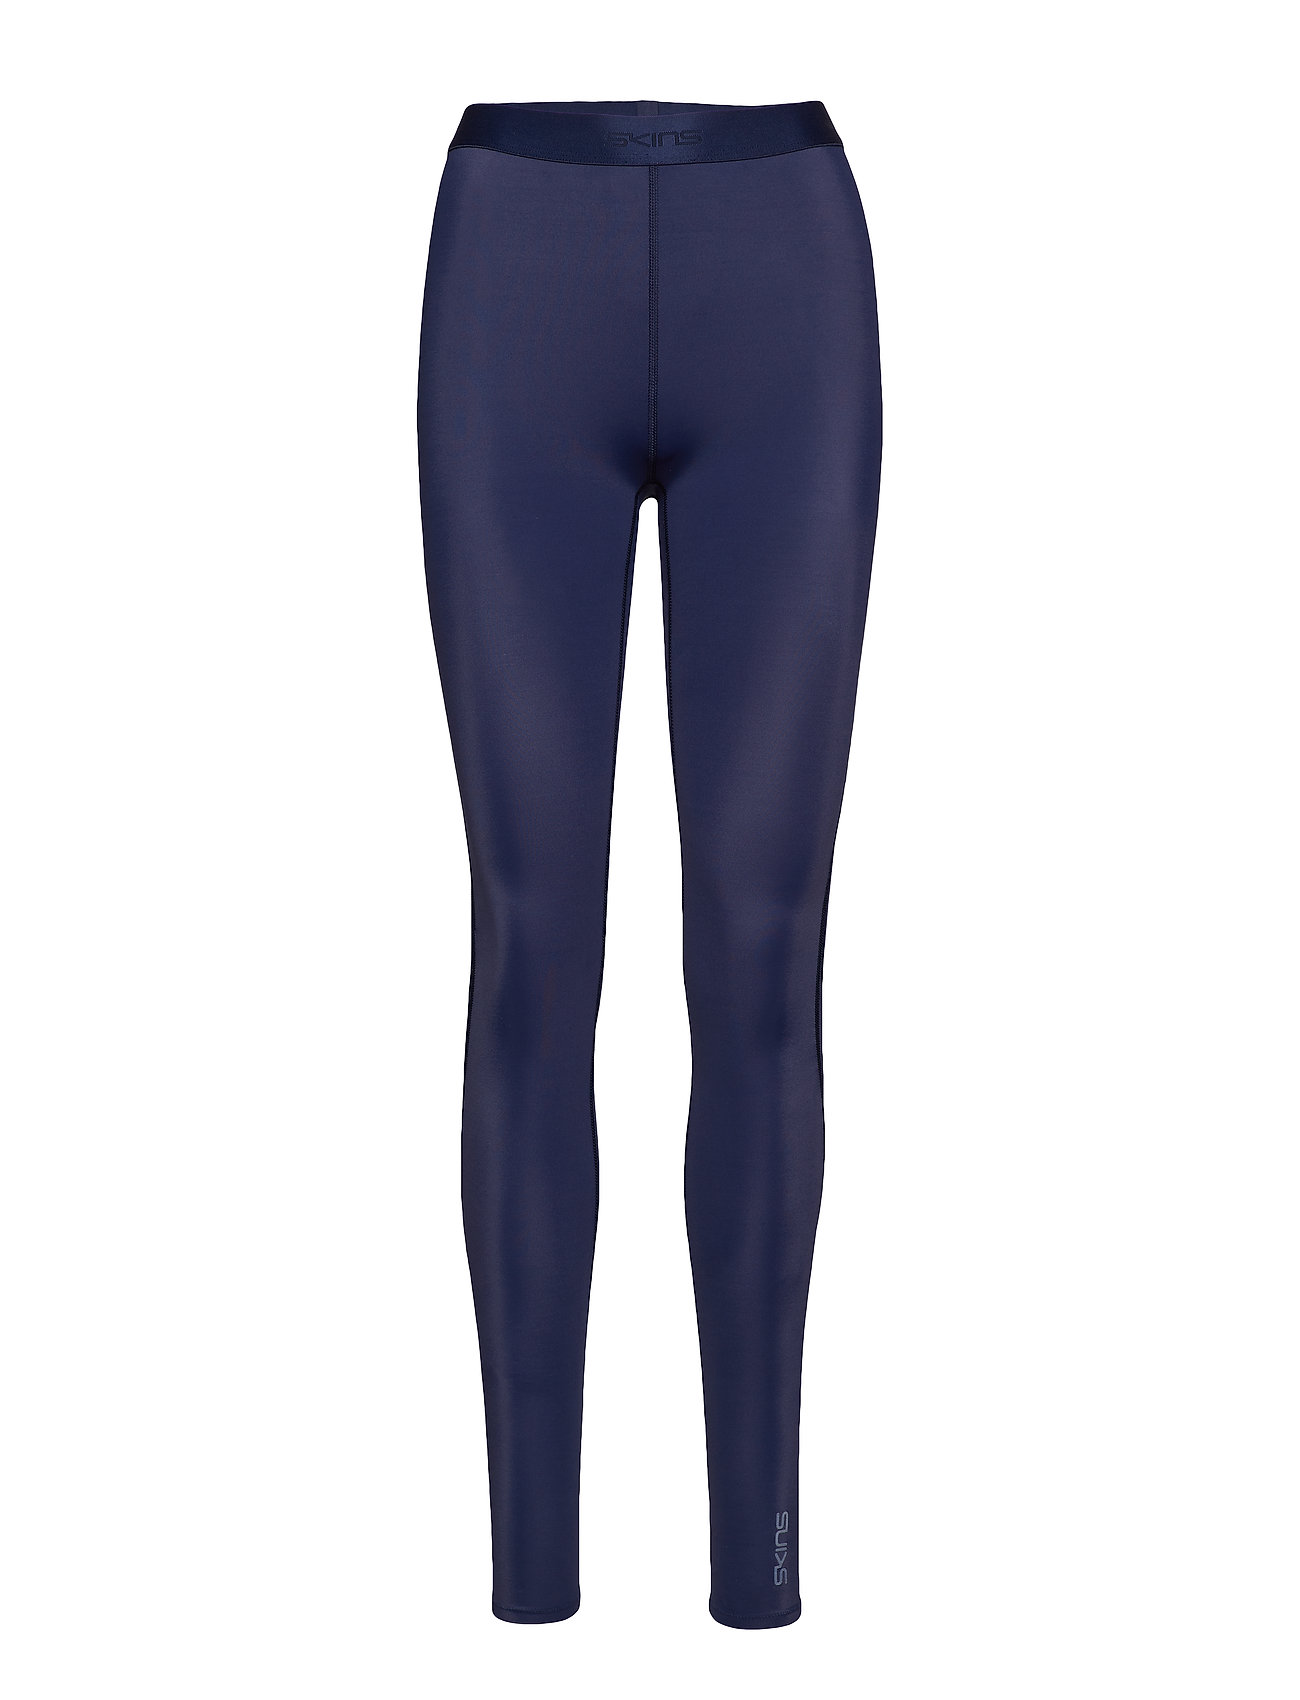 Skins DNAmic Womens Long Tights - NAVY BLUE